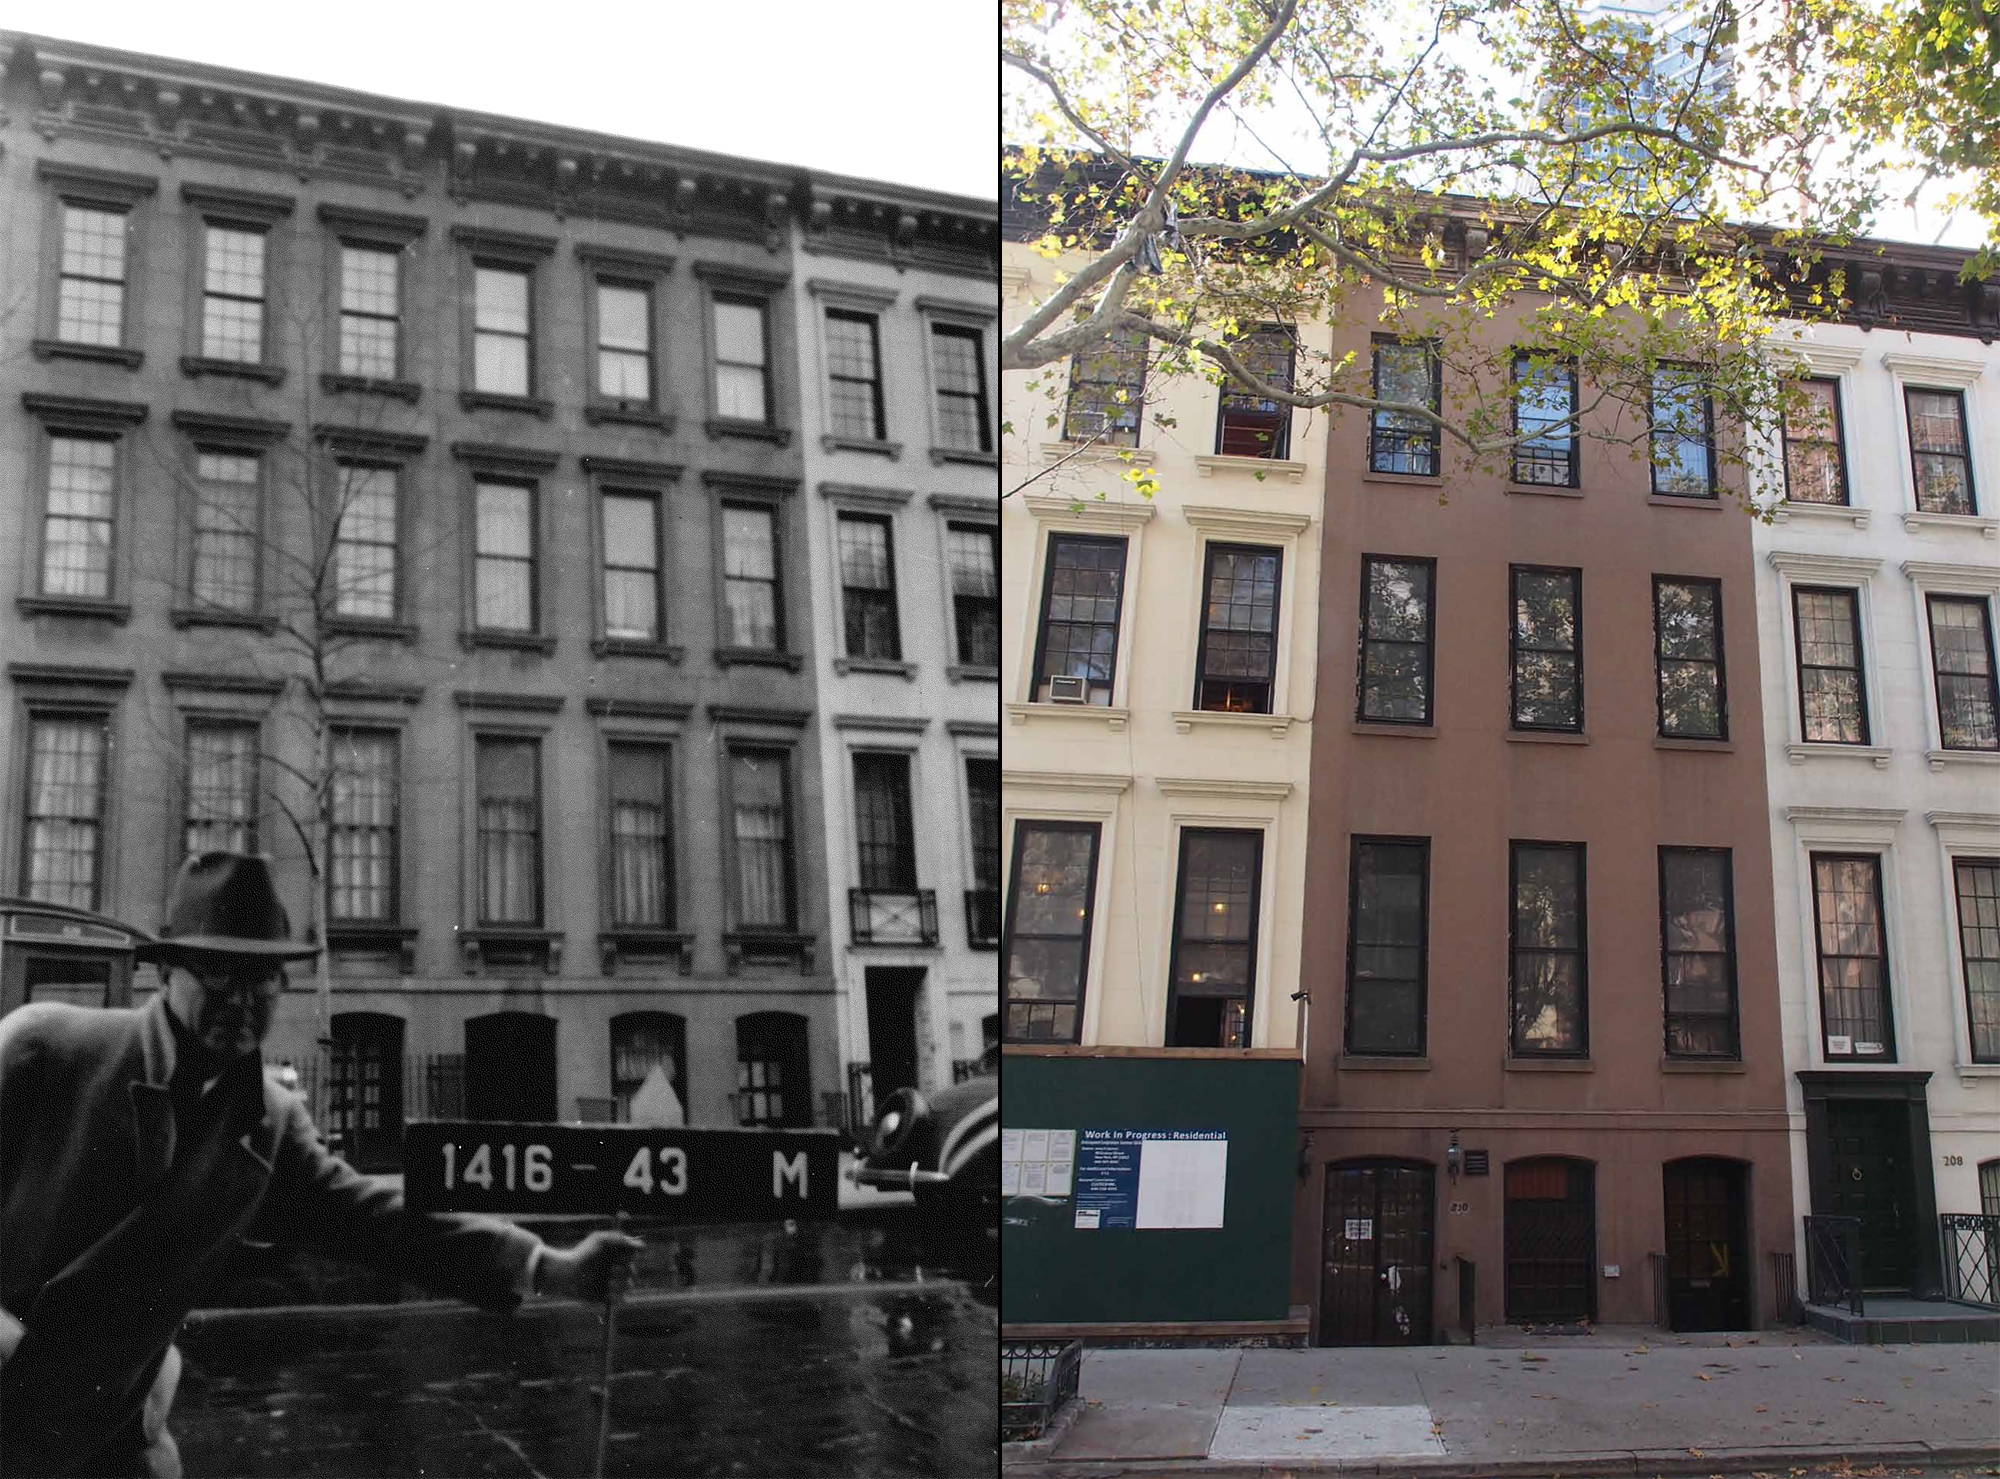 210 East 62nd Street, 1939 tax photo and existing conditions